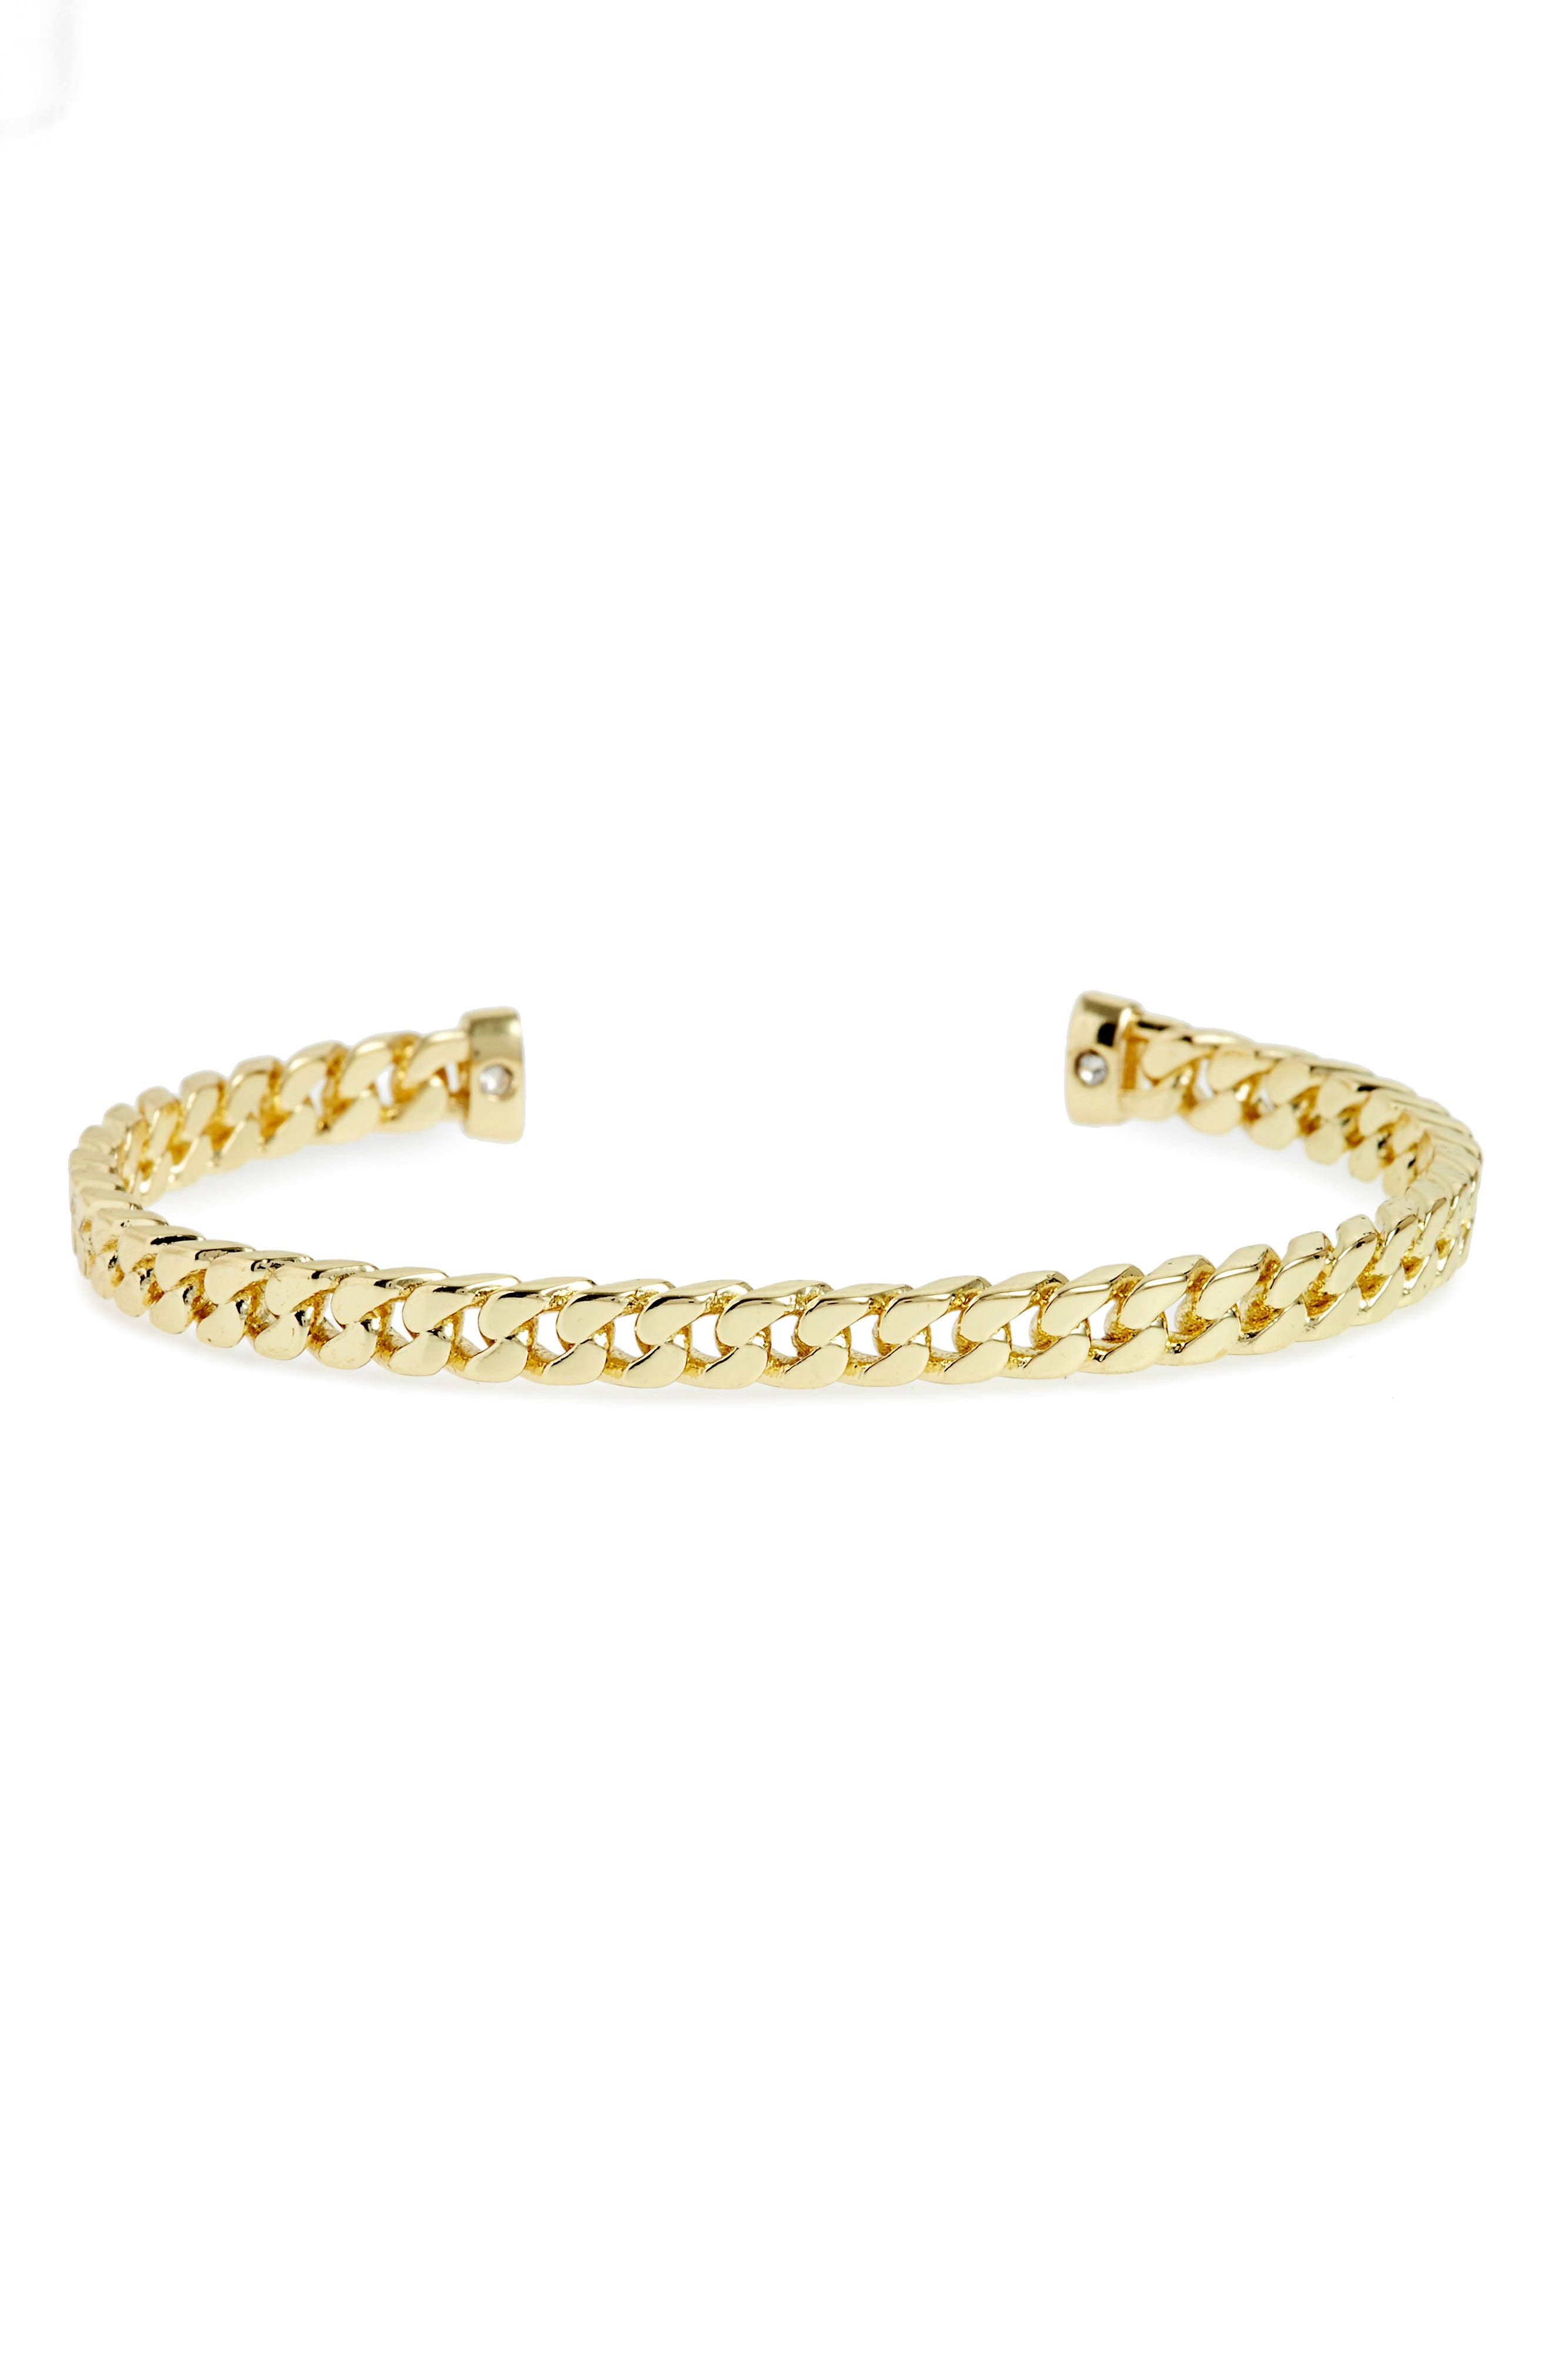 Cuff Bracelet,                         Main,                         color, Yellow Gold